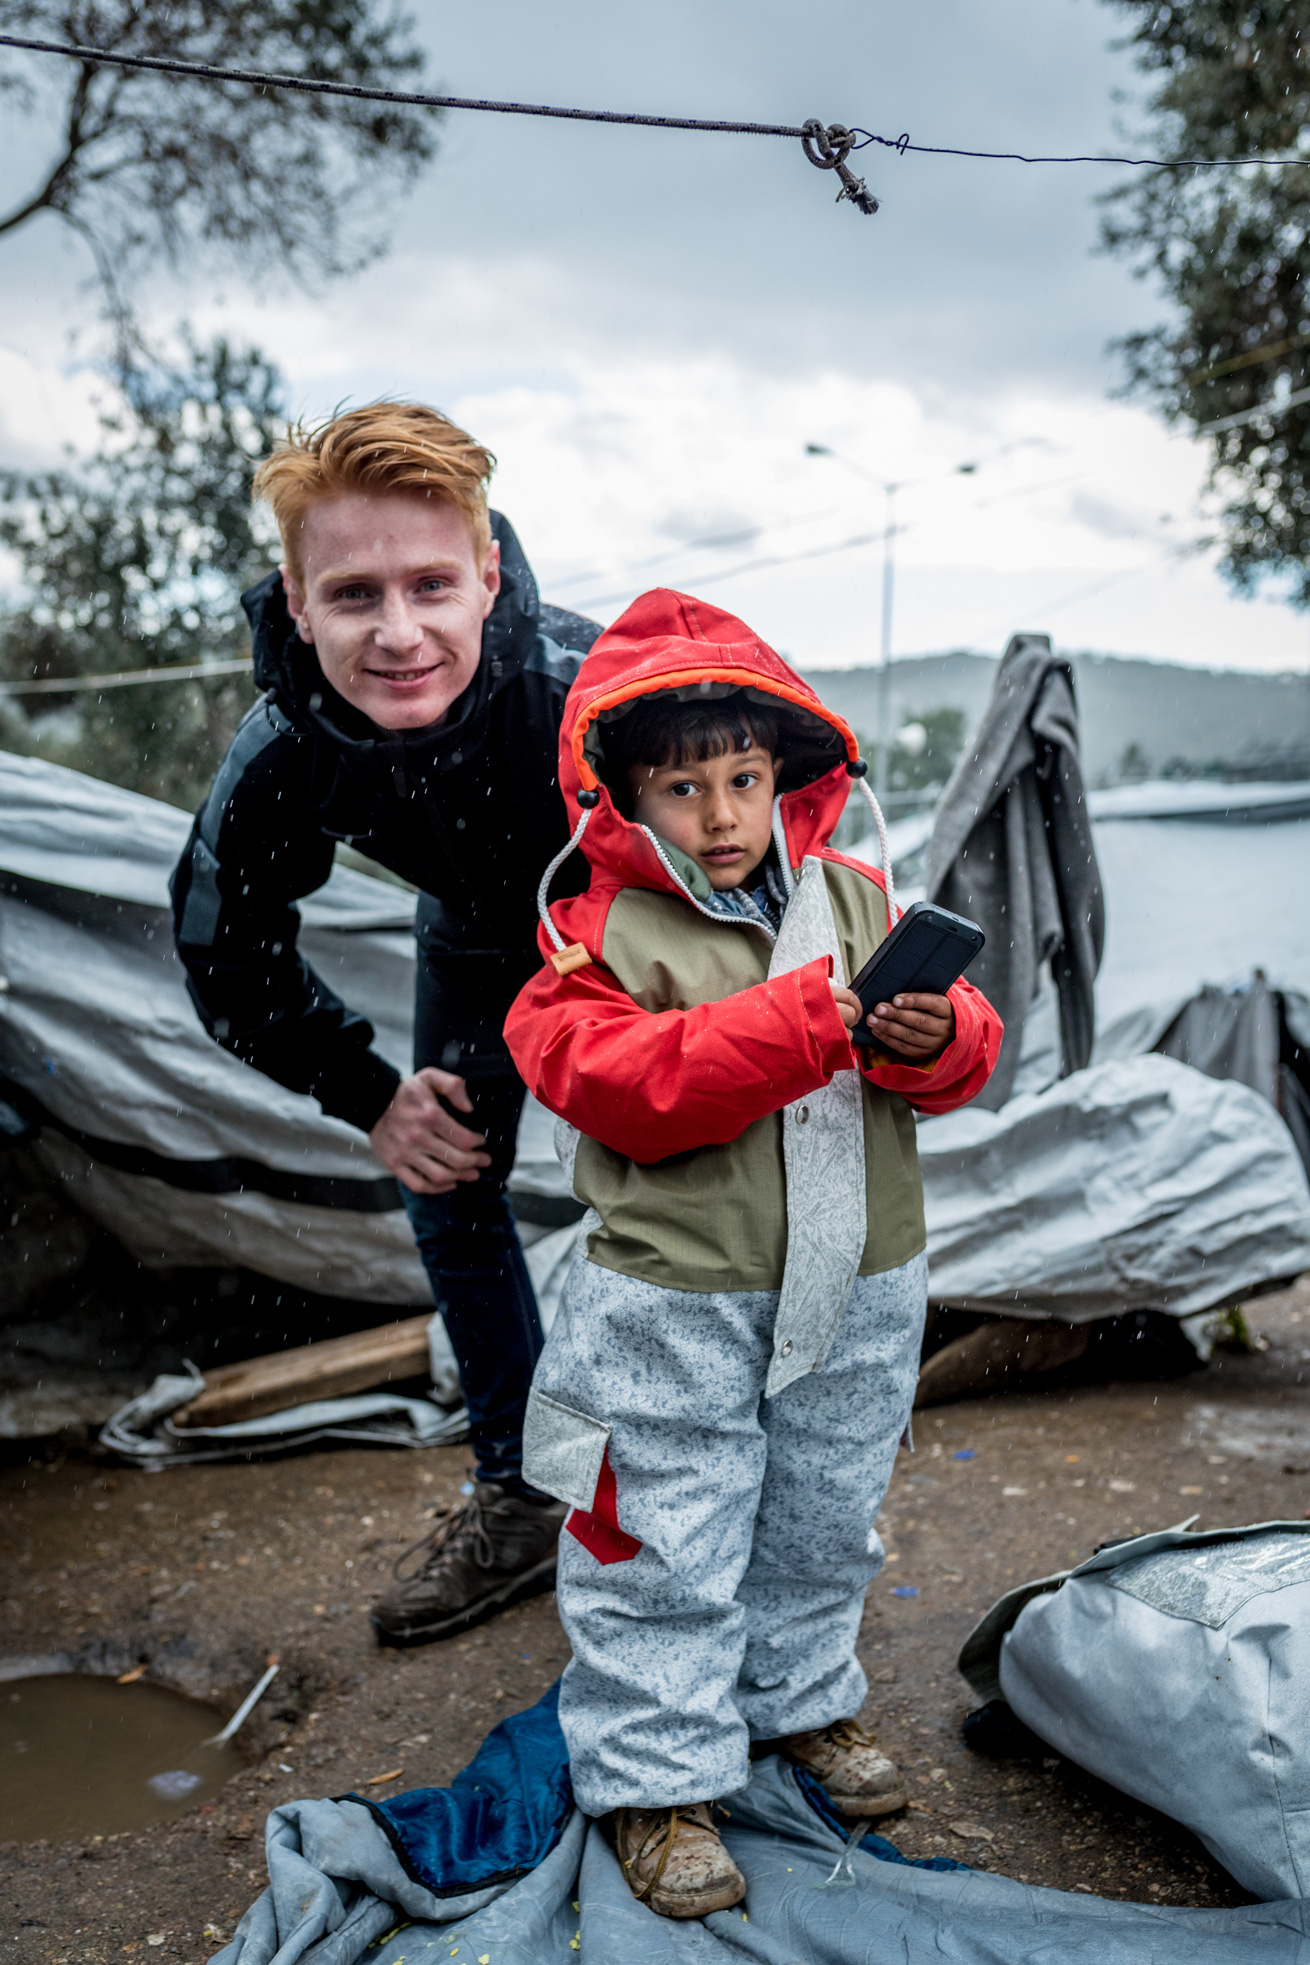 Bas Timmer at Lesbos distributing Sheltersuits to refugee children